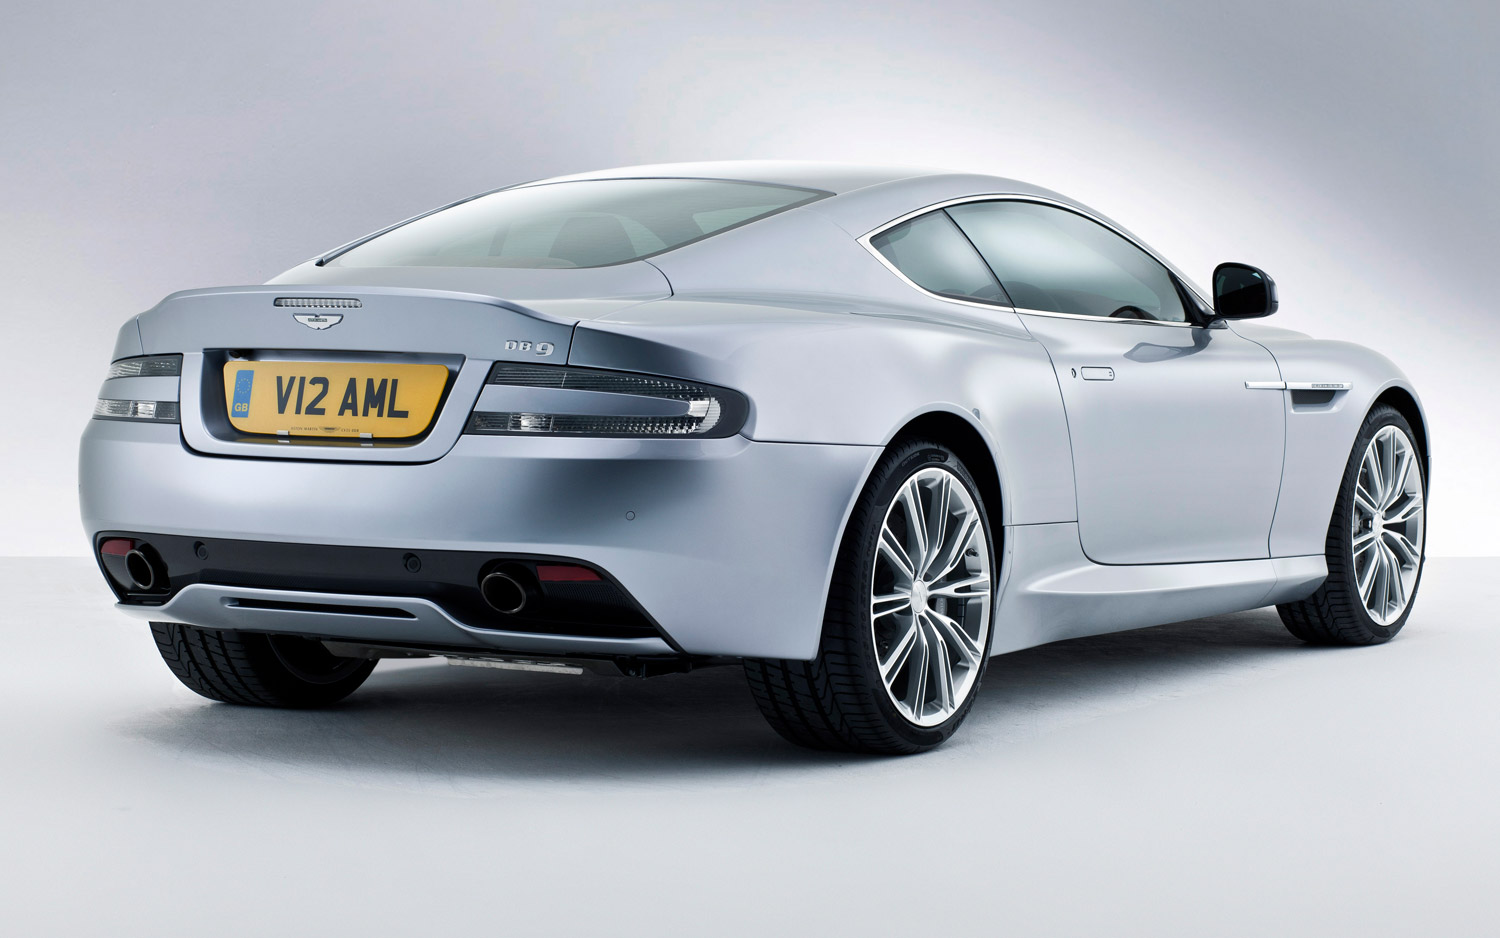 2013 Aston Martin DB9 Coupe Wallpaper Gallery Free Download